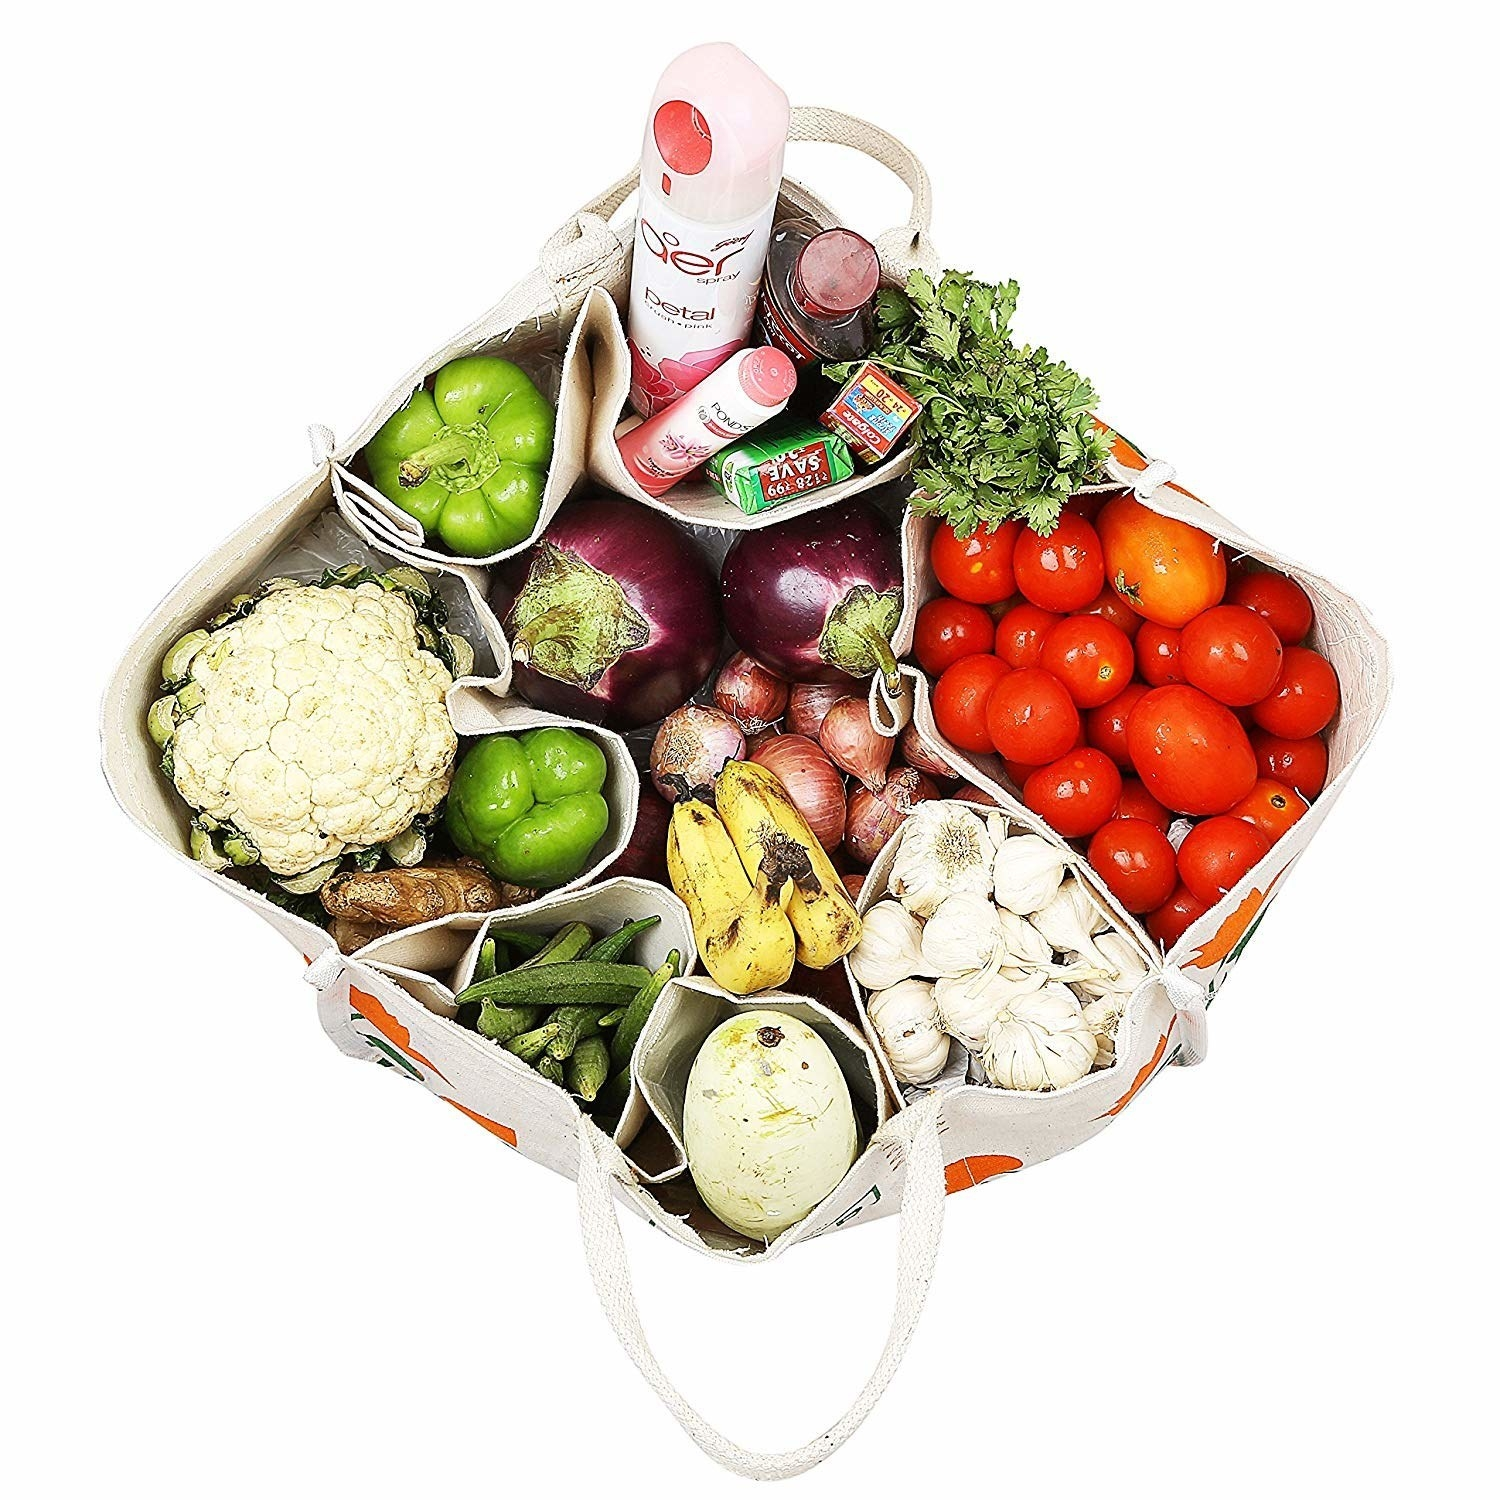 A canvas grocery bags sectioned off with vegetables in it